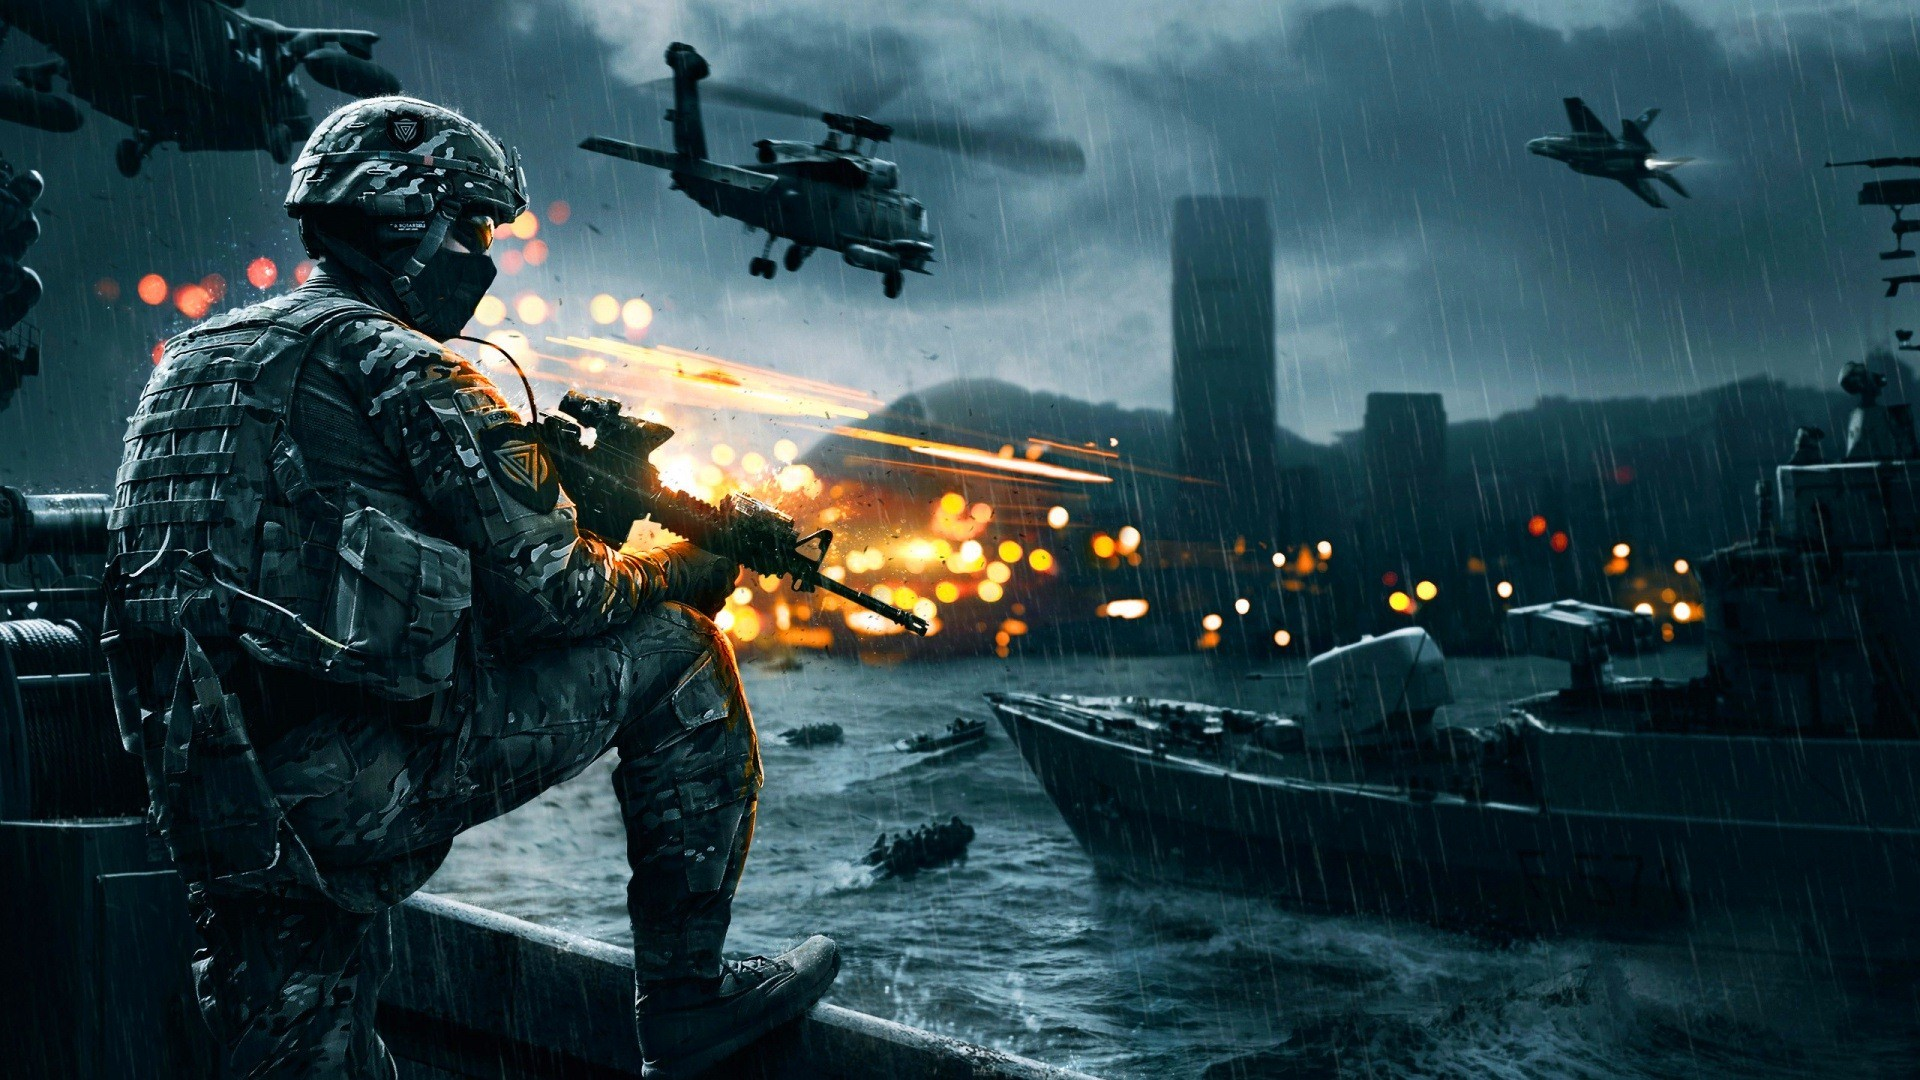 Cool gaming backgrounds 75 images - Cool desktop backgrounds gaming ...